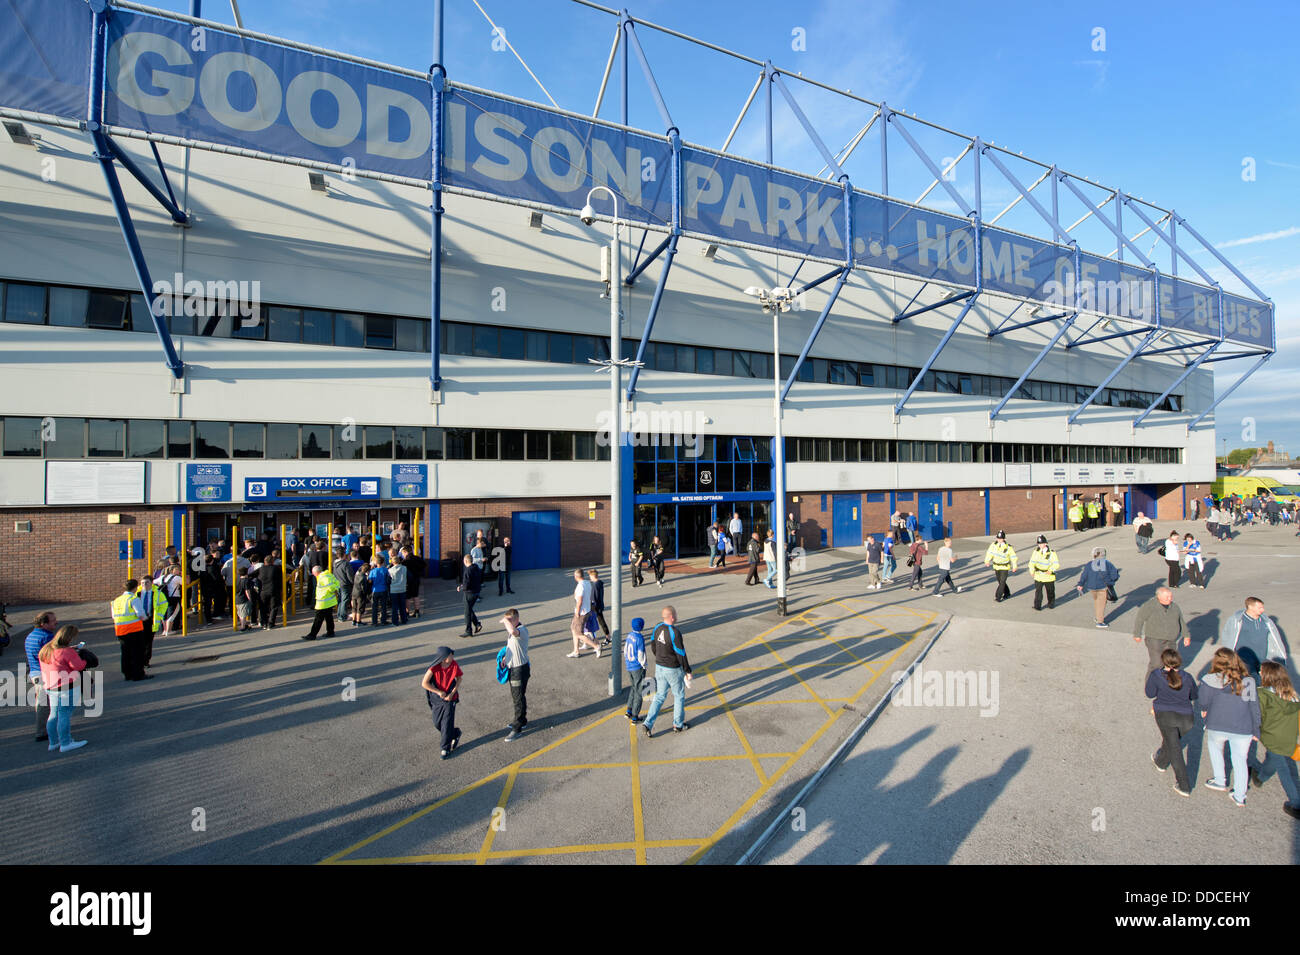 A wide angle shot of the Goodison Park stadium, home of Everton Football Club (Editorial use only). Stock Photo